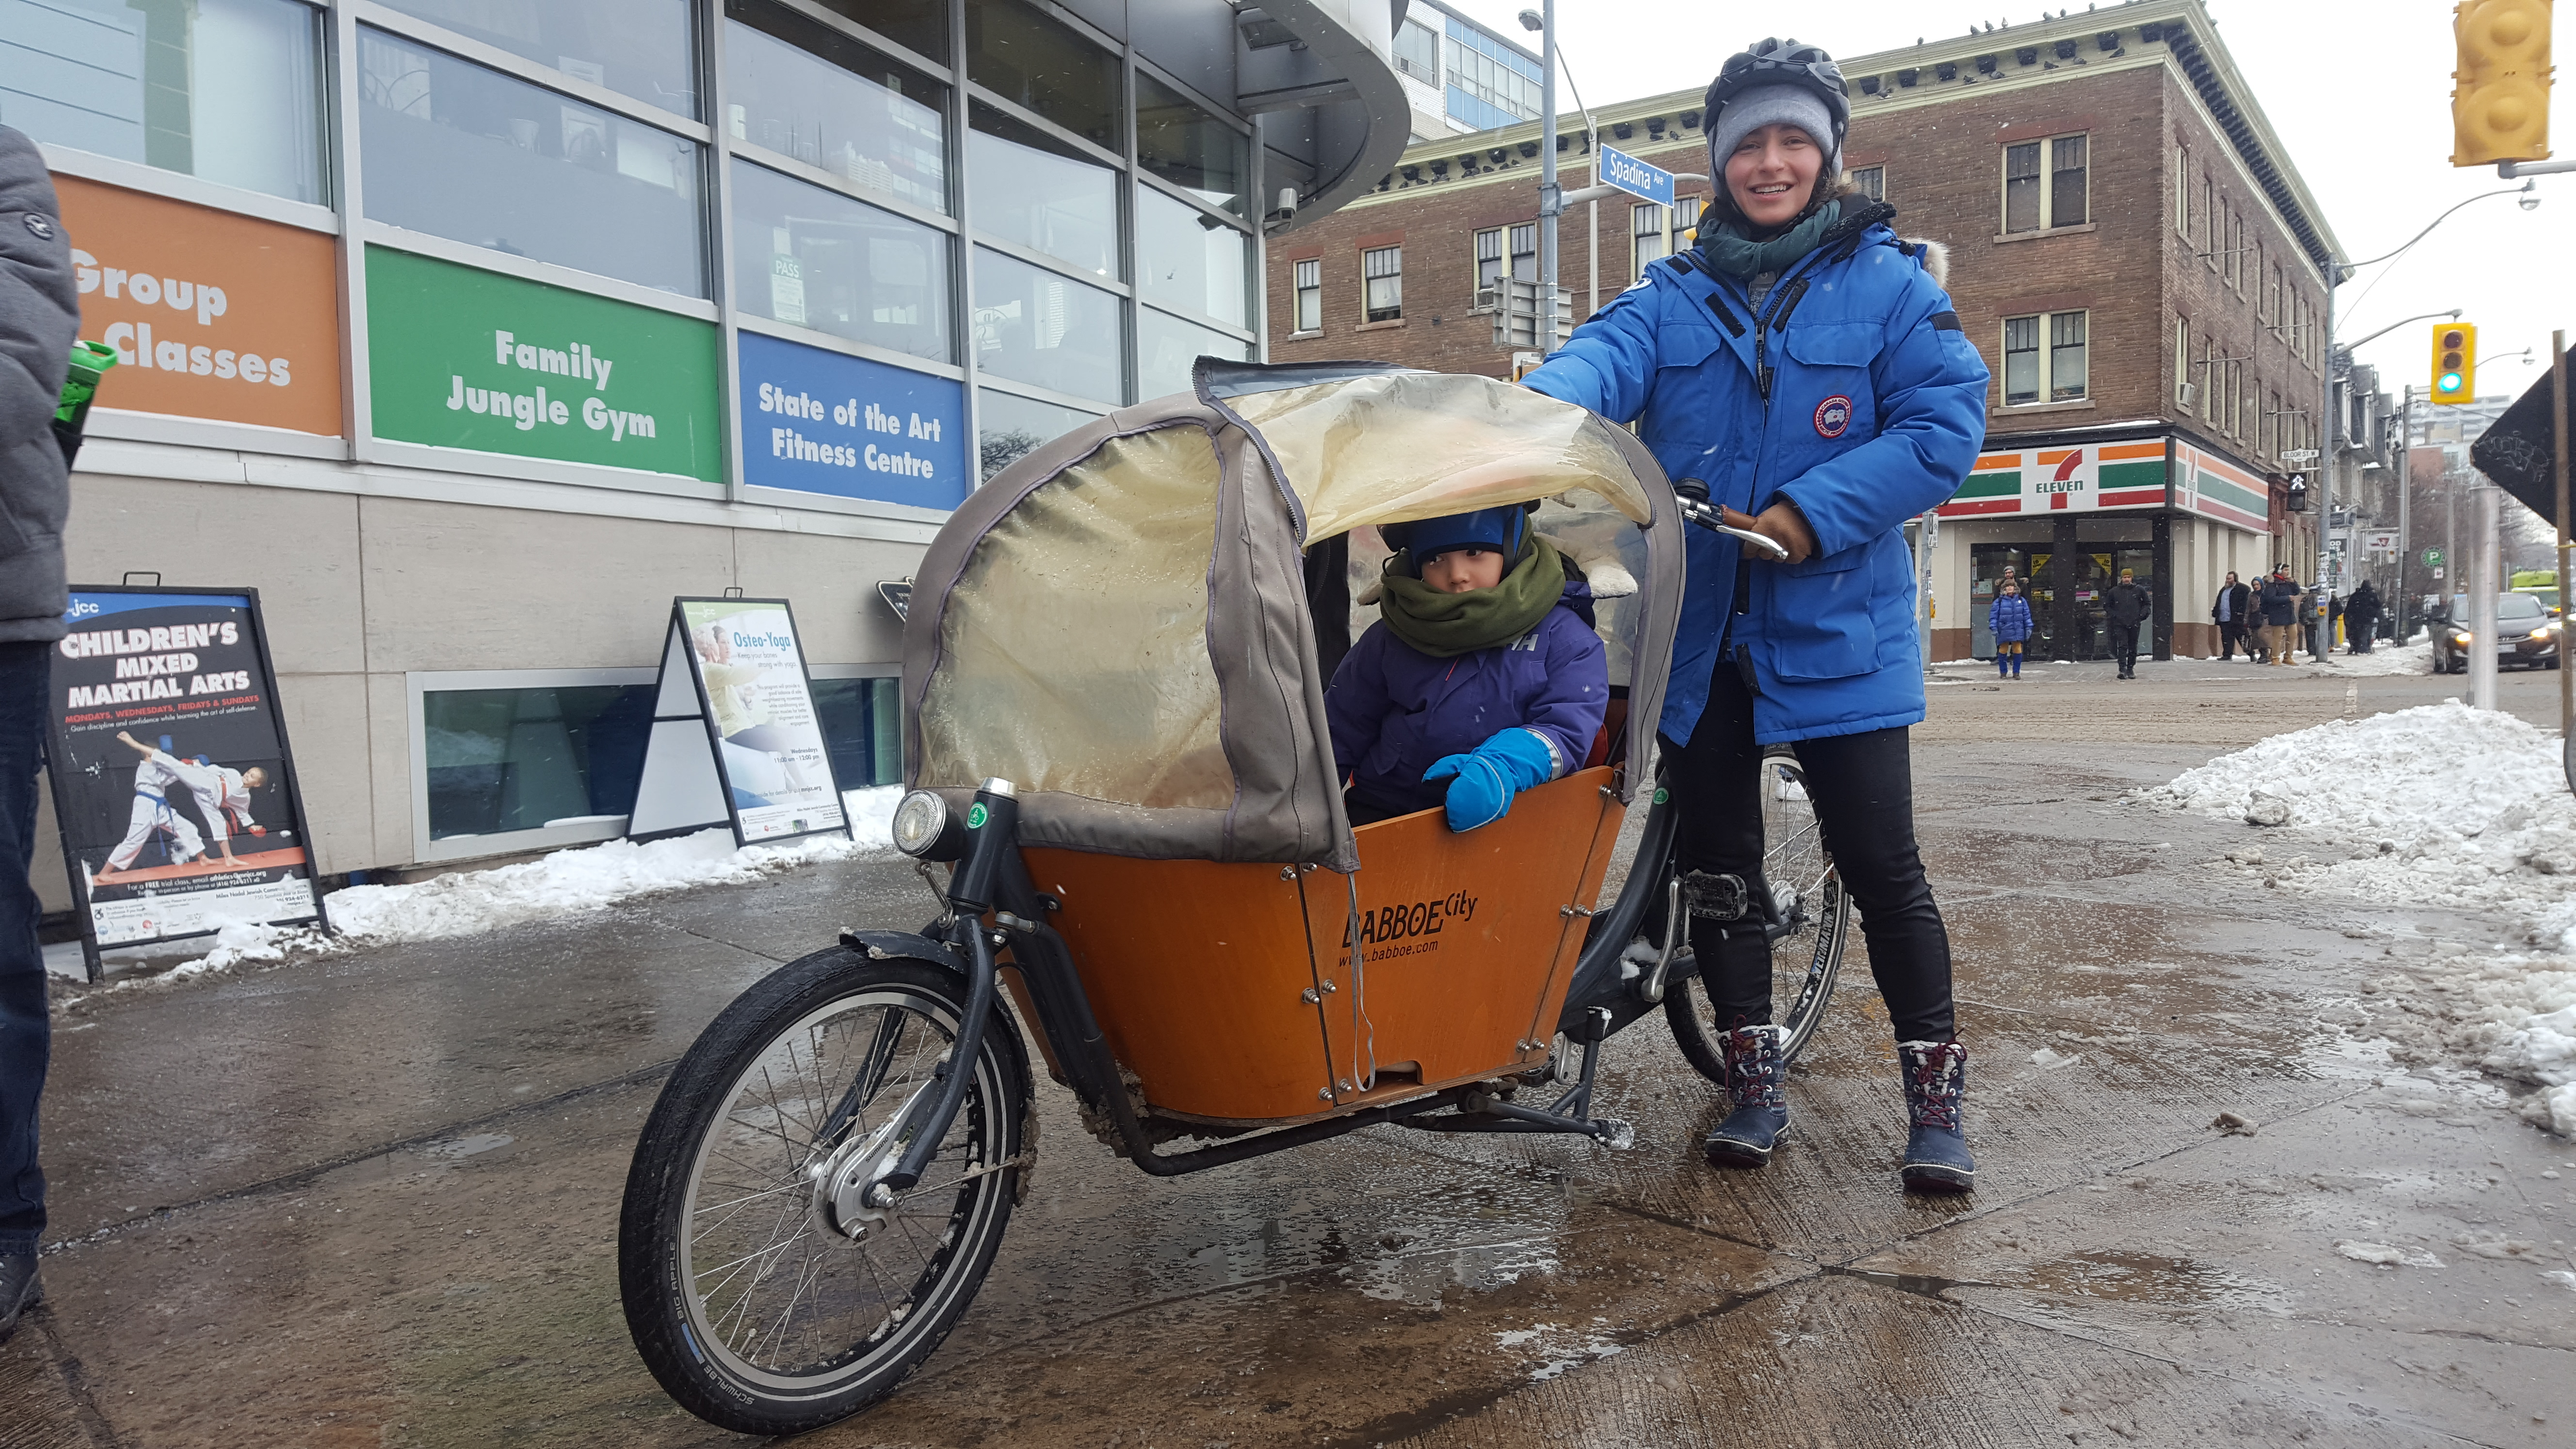 A child sits in a cargo bike with an adult standing behind them. It looks cold and wet, but the kid is warm!